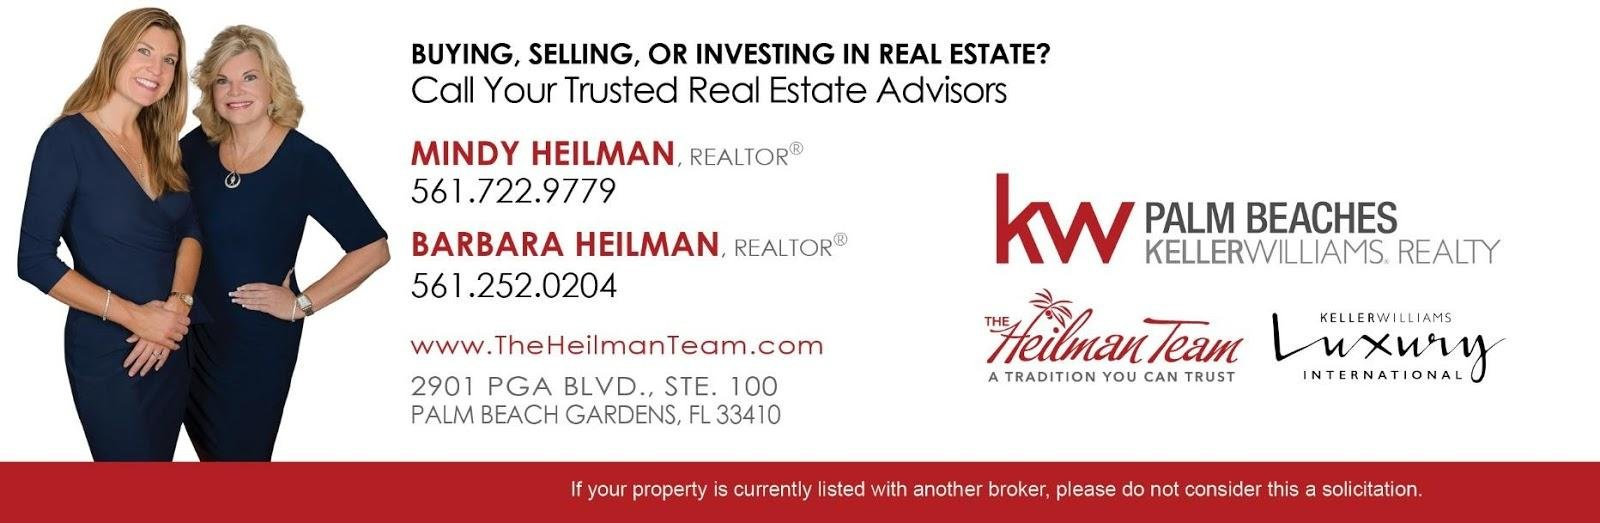 The Heilman Team 561-722-9779. www.theheilmanteam.com. Luxury property site at www.heilmanteamluxuryproperties.com